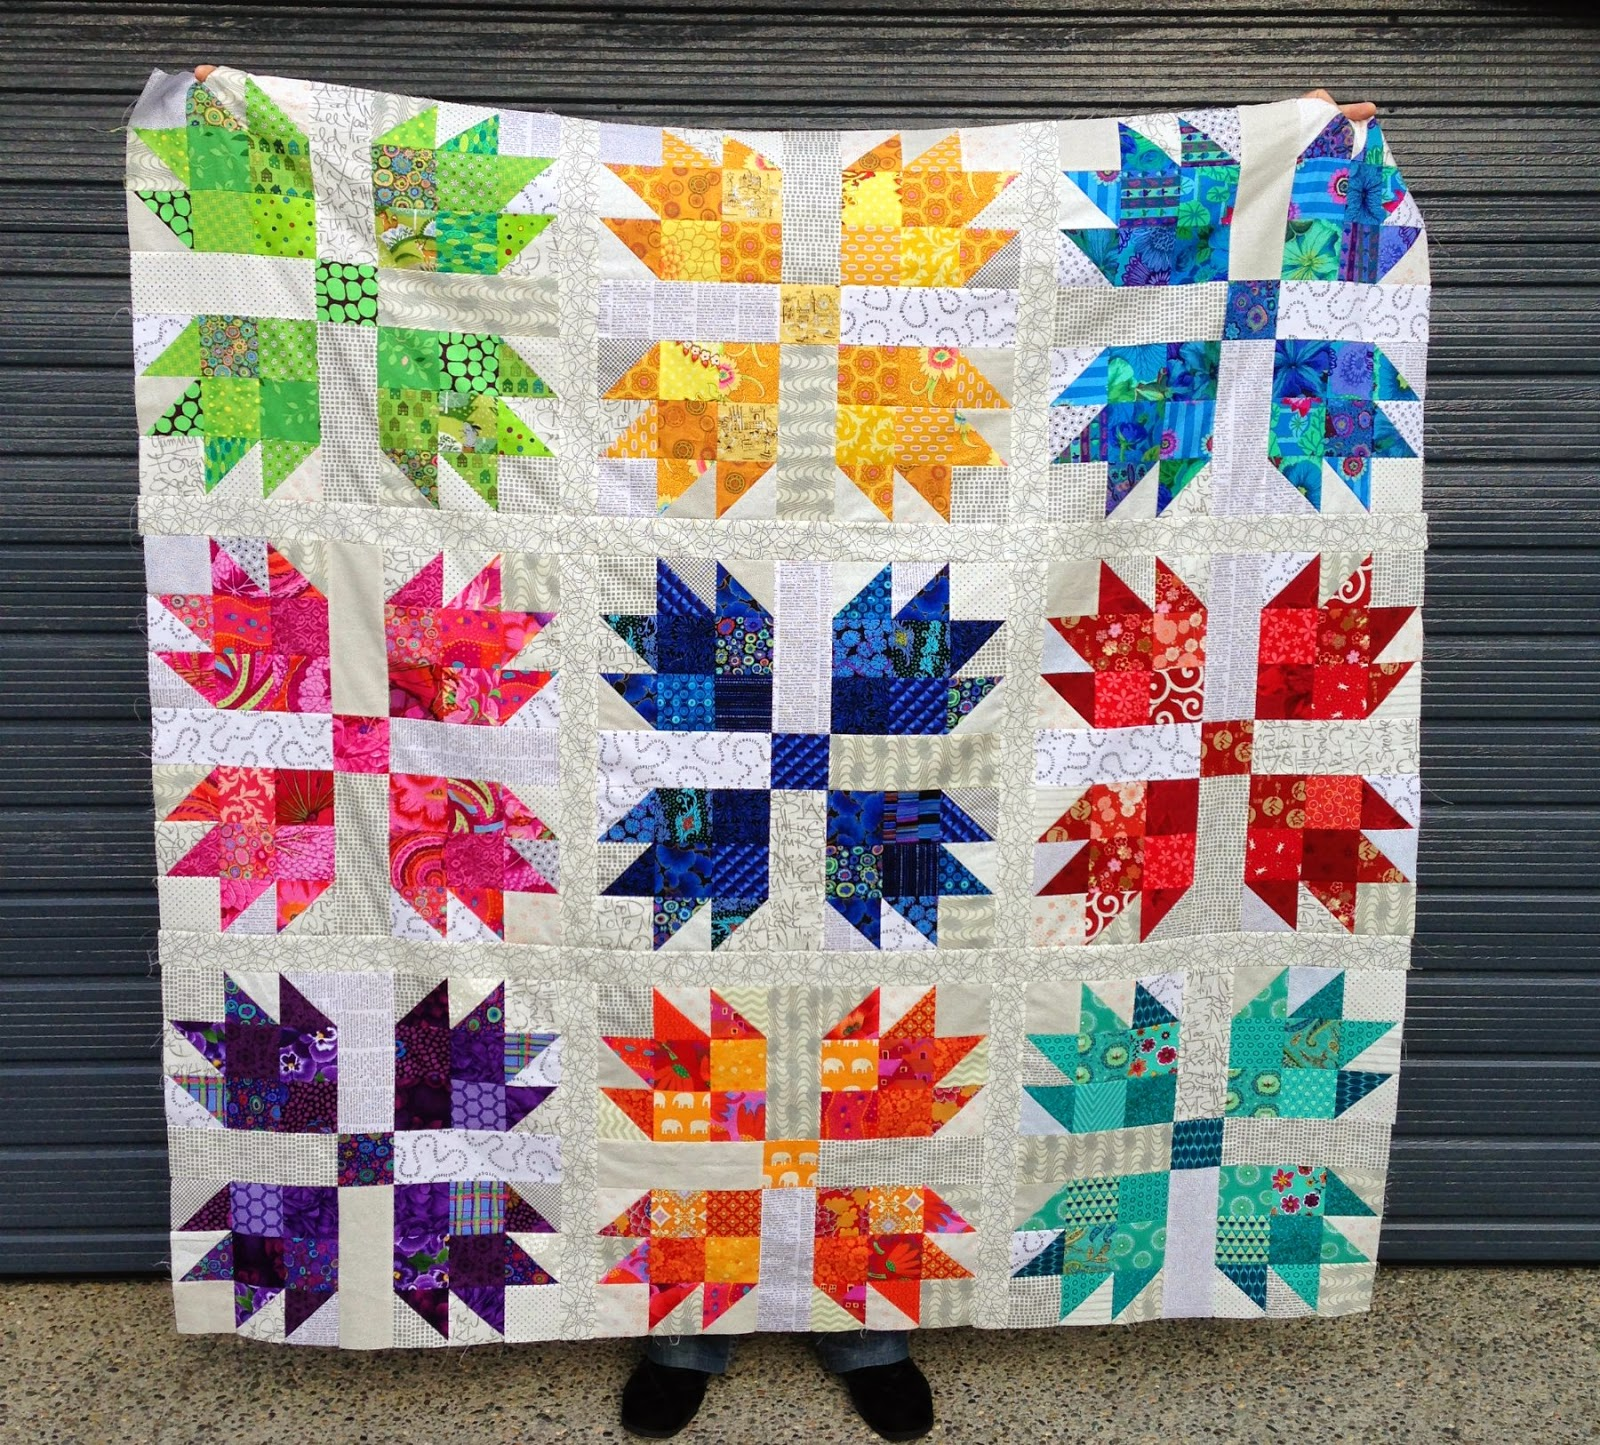 Wendy s quilts and more: Scrappy Bear Paw Quilt